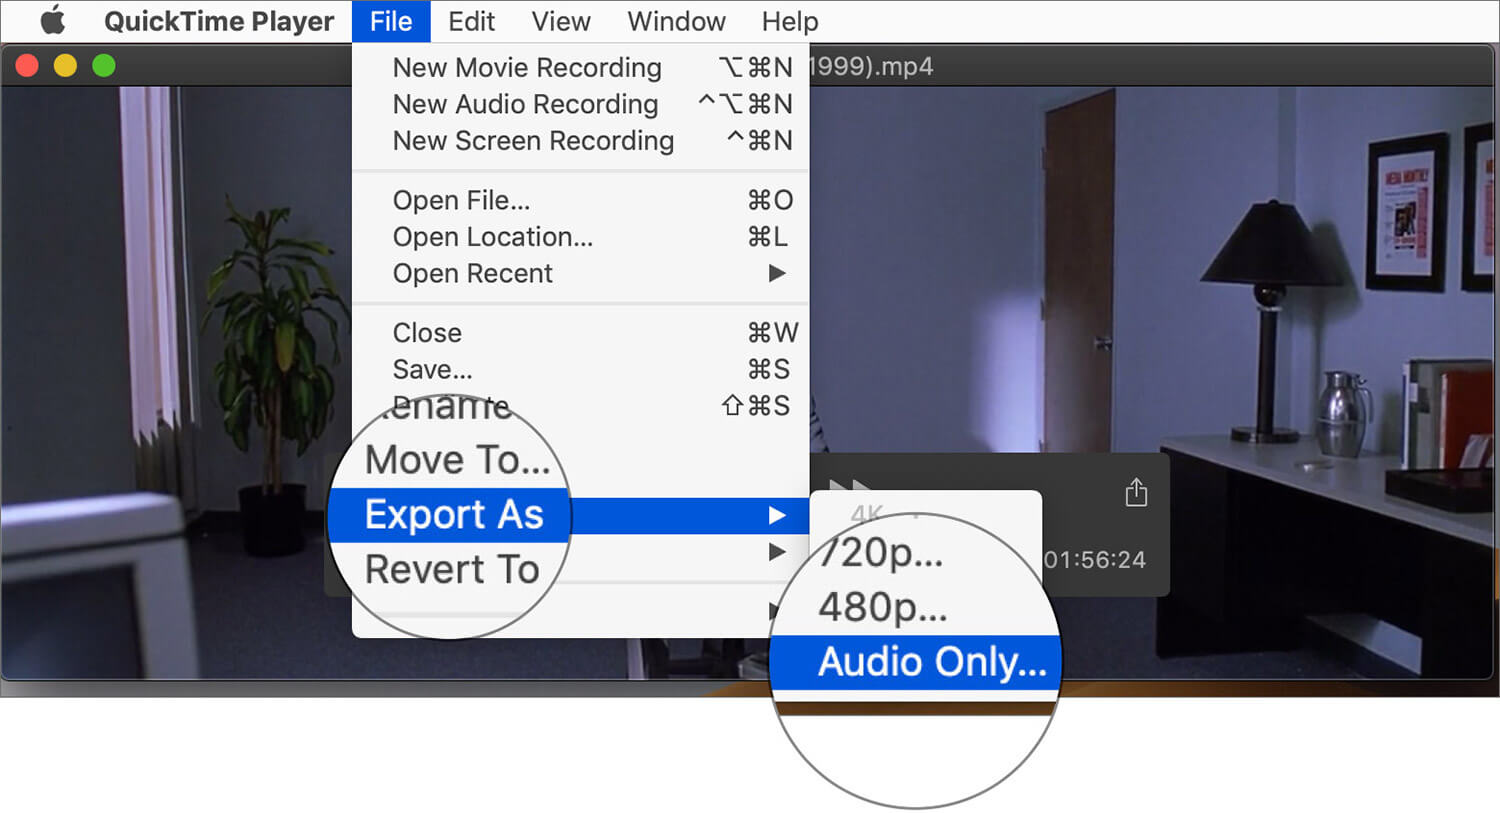 Click on Export As and Select Audio Only in Mac QuickTime Player